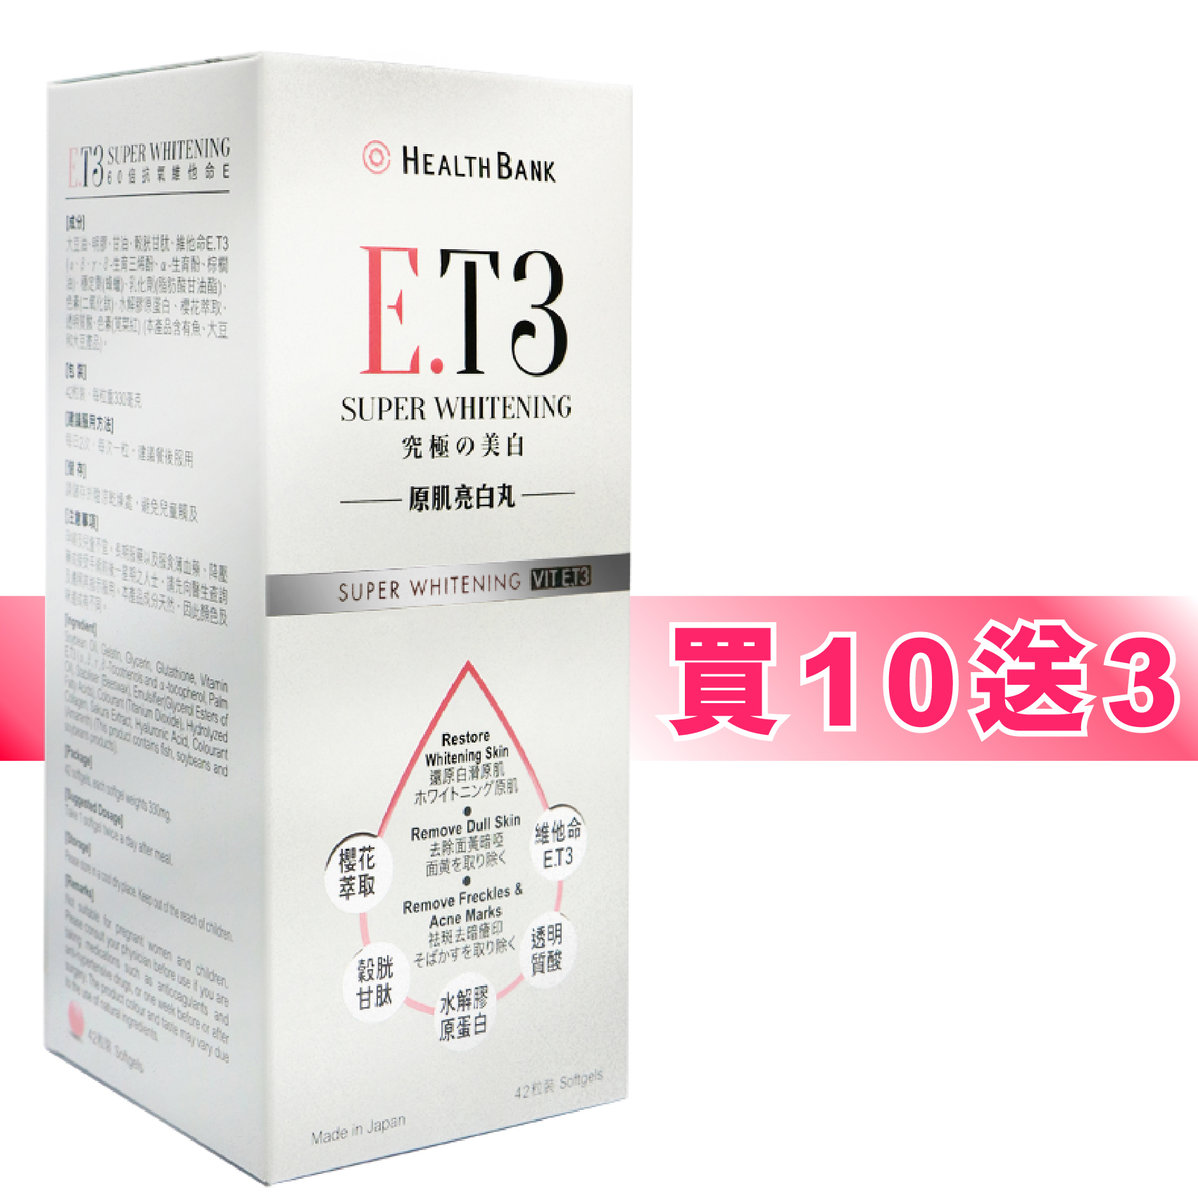 E‧T3 Super Whitening 42's (10+3 Package)